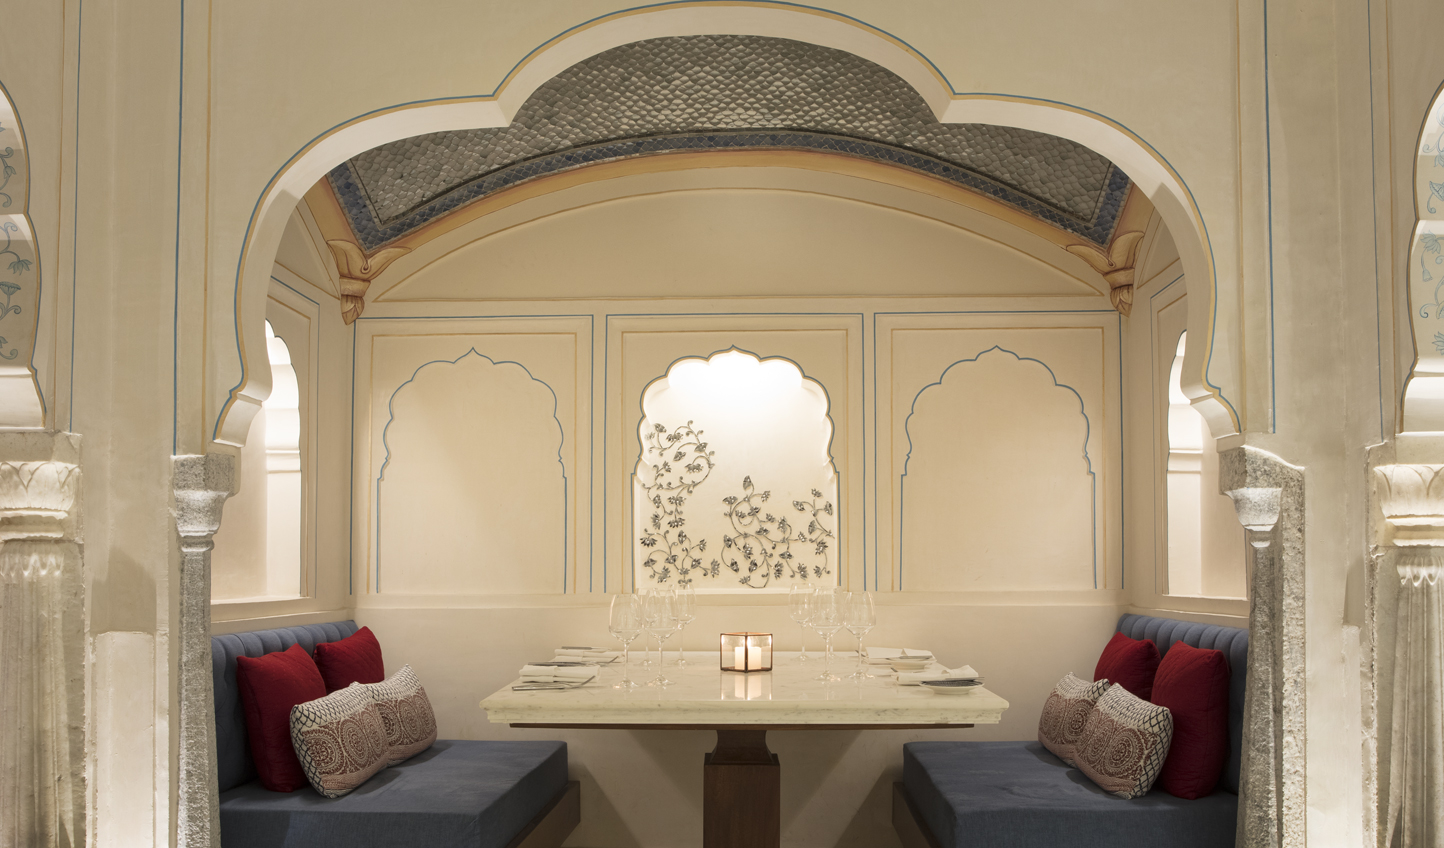 Settle into a nook at Amarsar and savour dishes inspired by the Silk Route